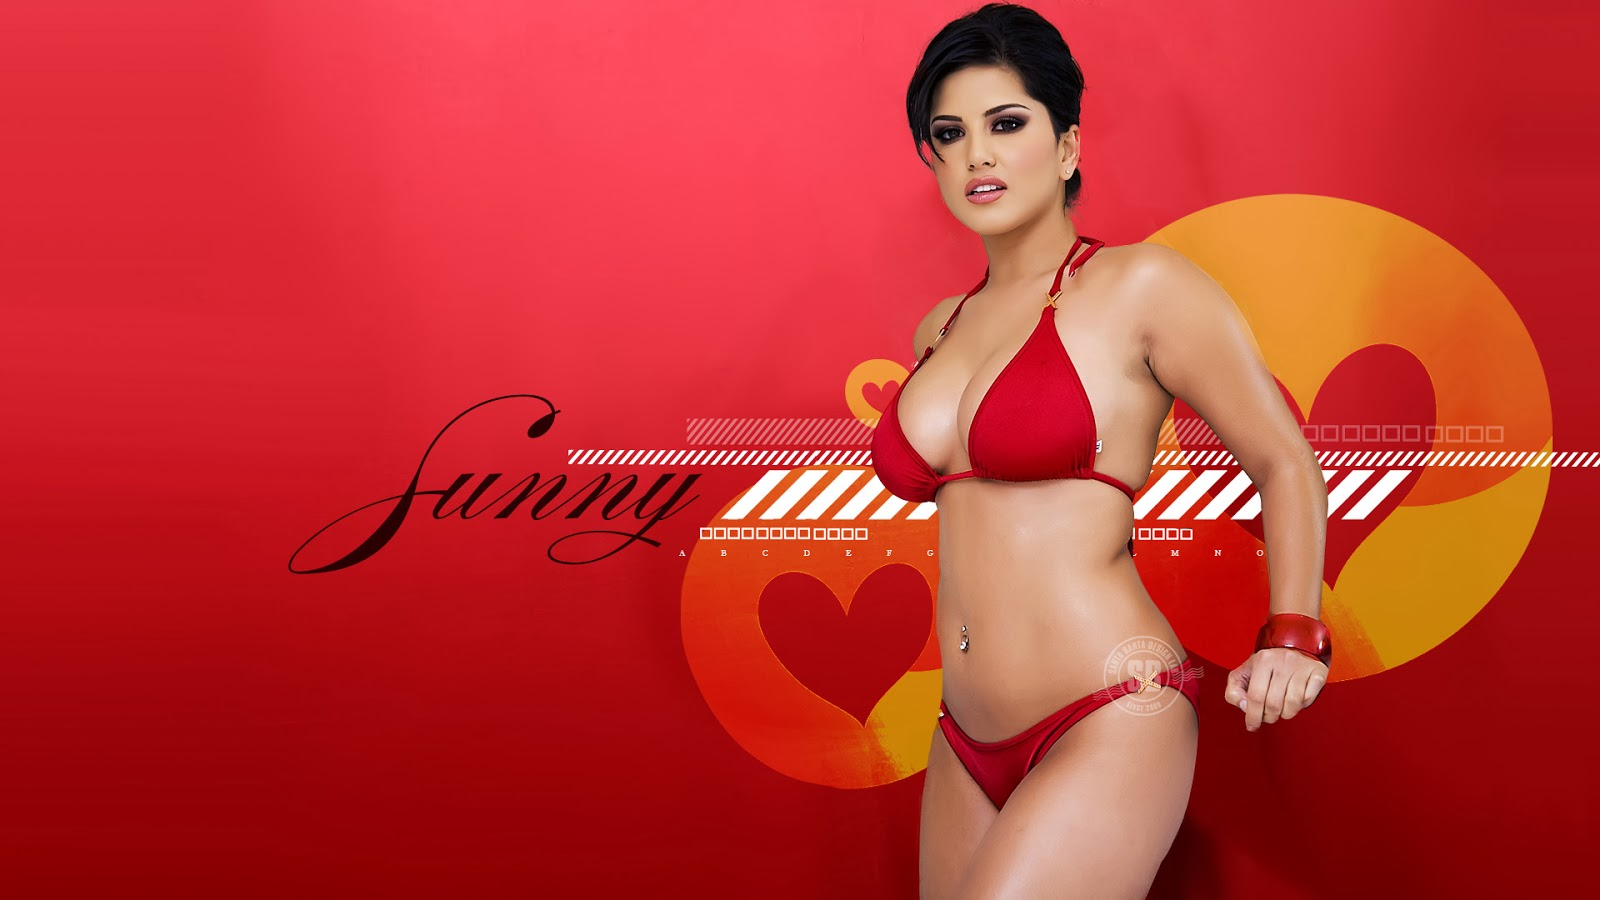 Sunny Leone Non Nude But Hot Full Hd Wallpapers 37